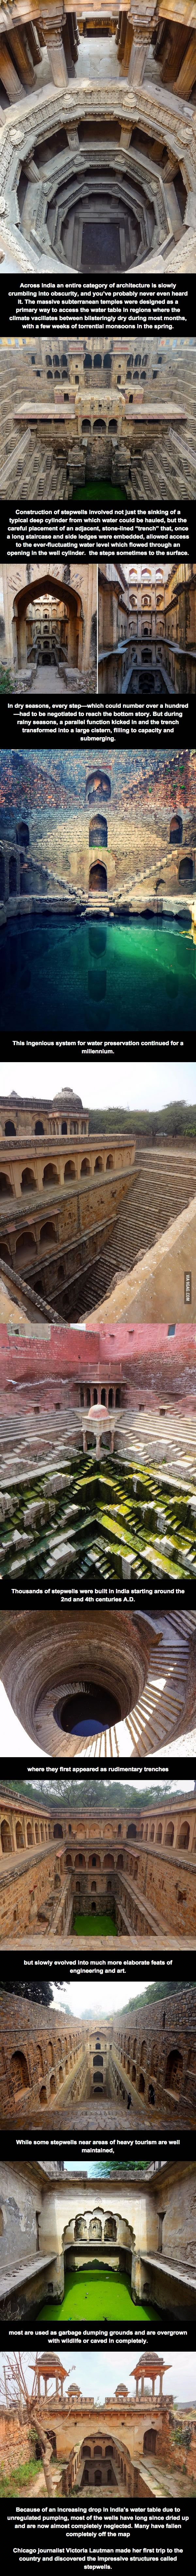 Journalist spends four years traversing India to document crumbling subterranean stepwells in India before they disappear